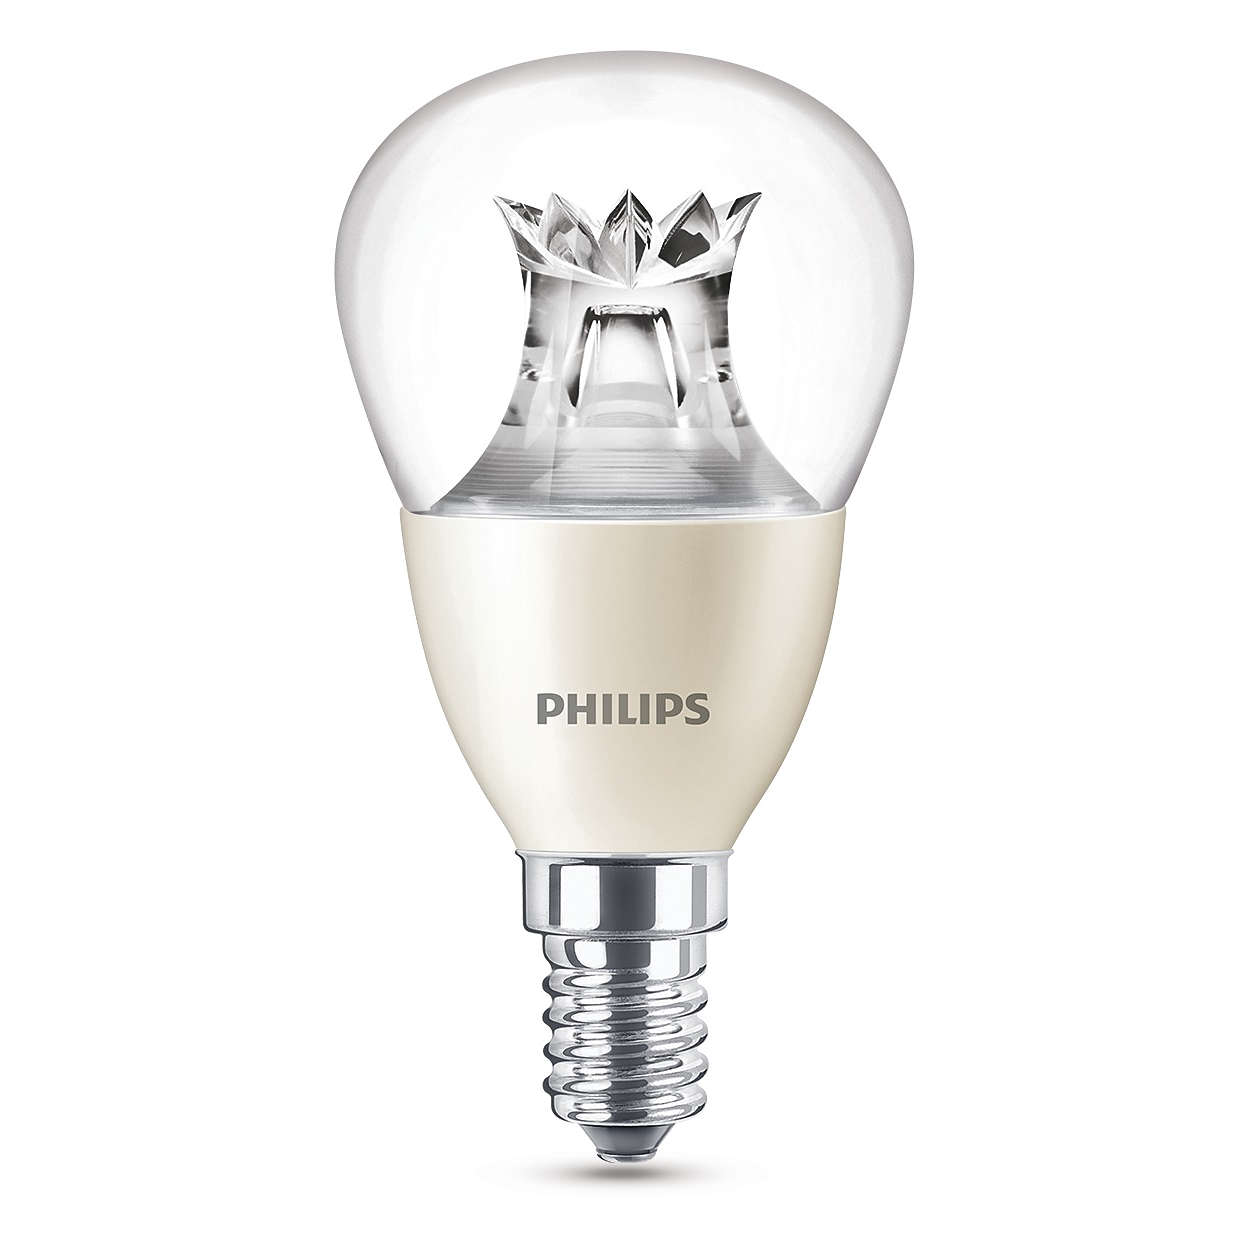 40 x philips warm glow led e14 edison 40w dimmable mini. Black Bedroom Furniture Sets. Home Design Ideas